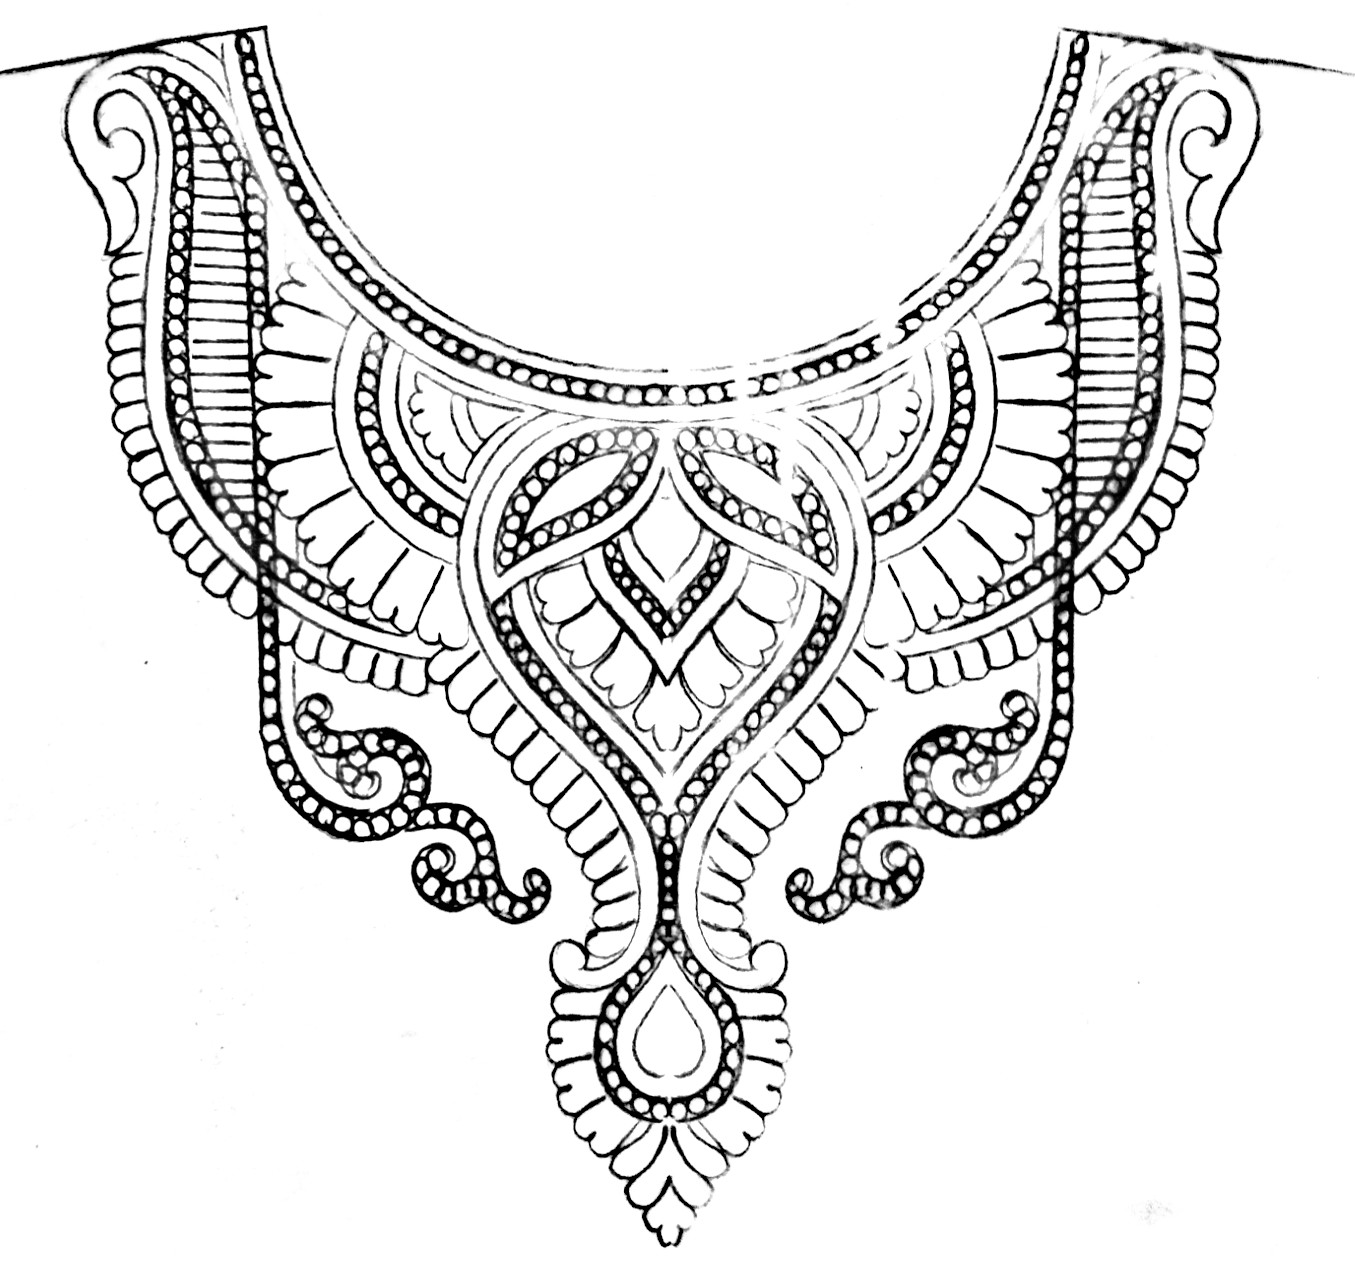 Neck design drawing for embrodiary / hand embroidery and machine emroidery work neck design patterns sketches free